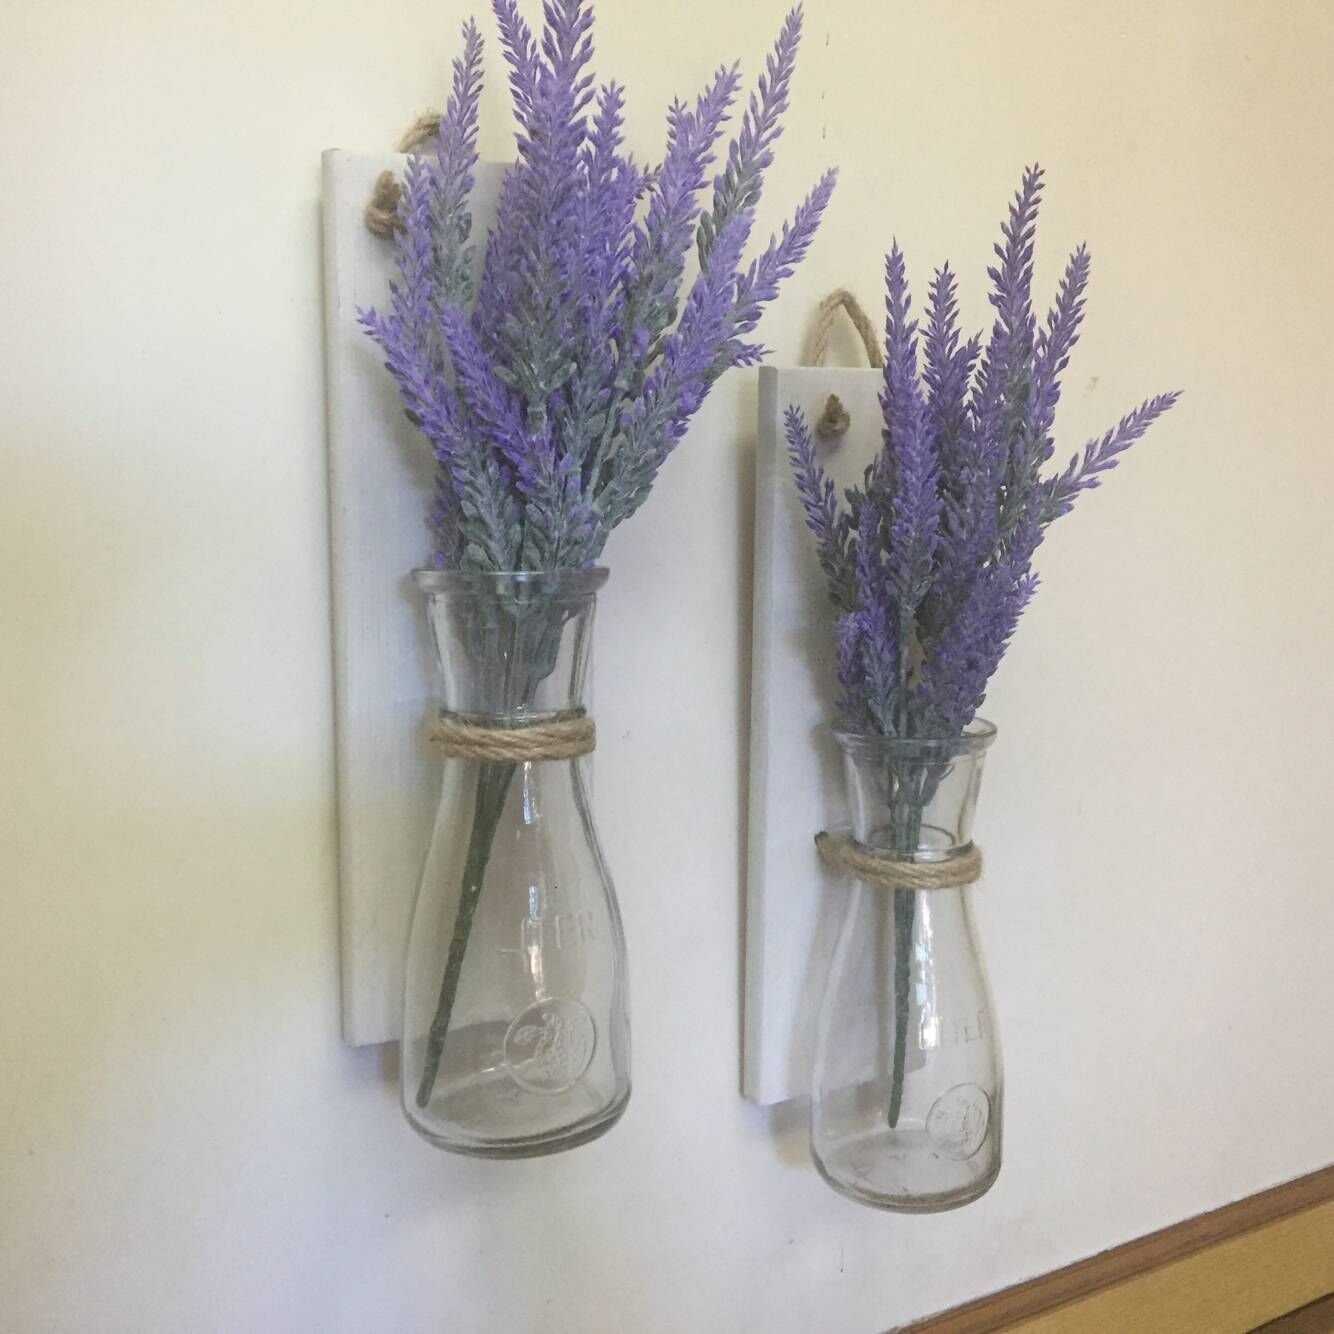 Set of 2 Mason Jar Sconces, Rustic Home Decor White Wood Mason Jar Wall Vase Wall Sconce Lavender Decoration Mother Gift